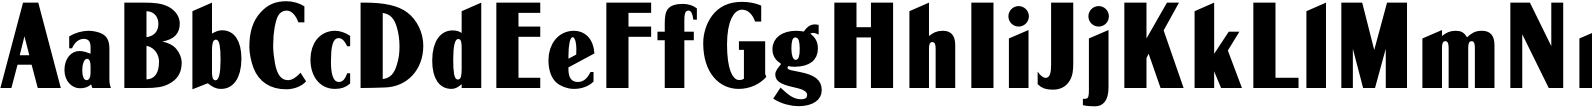 Globe Gothic MN Condensed Bold Font